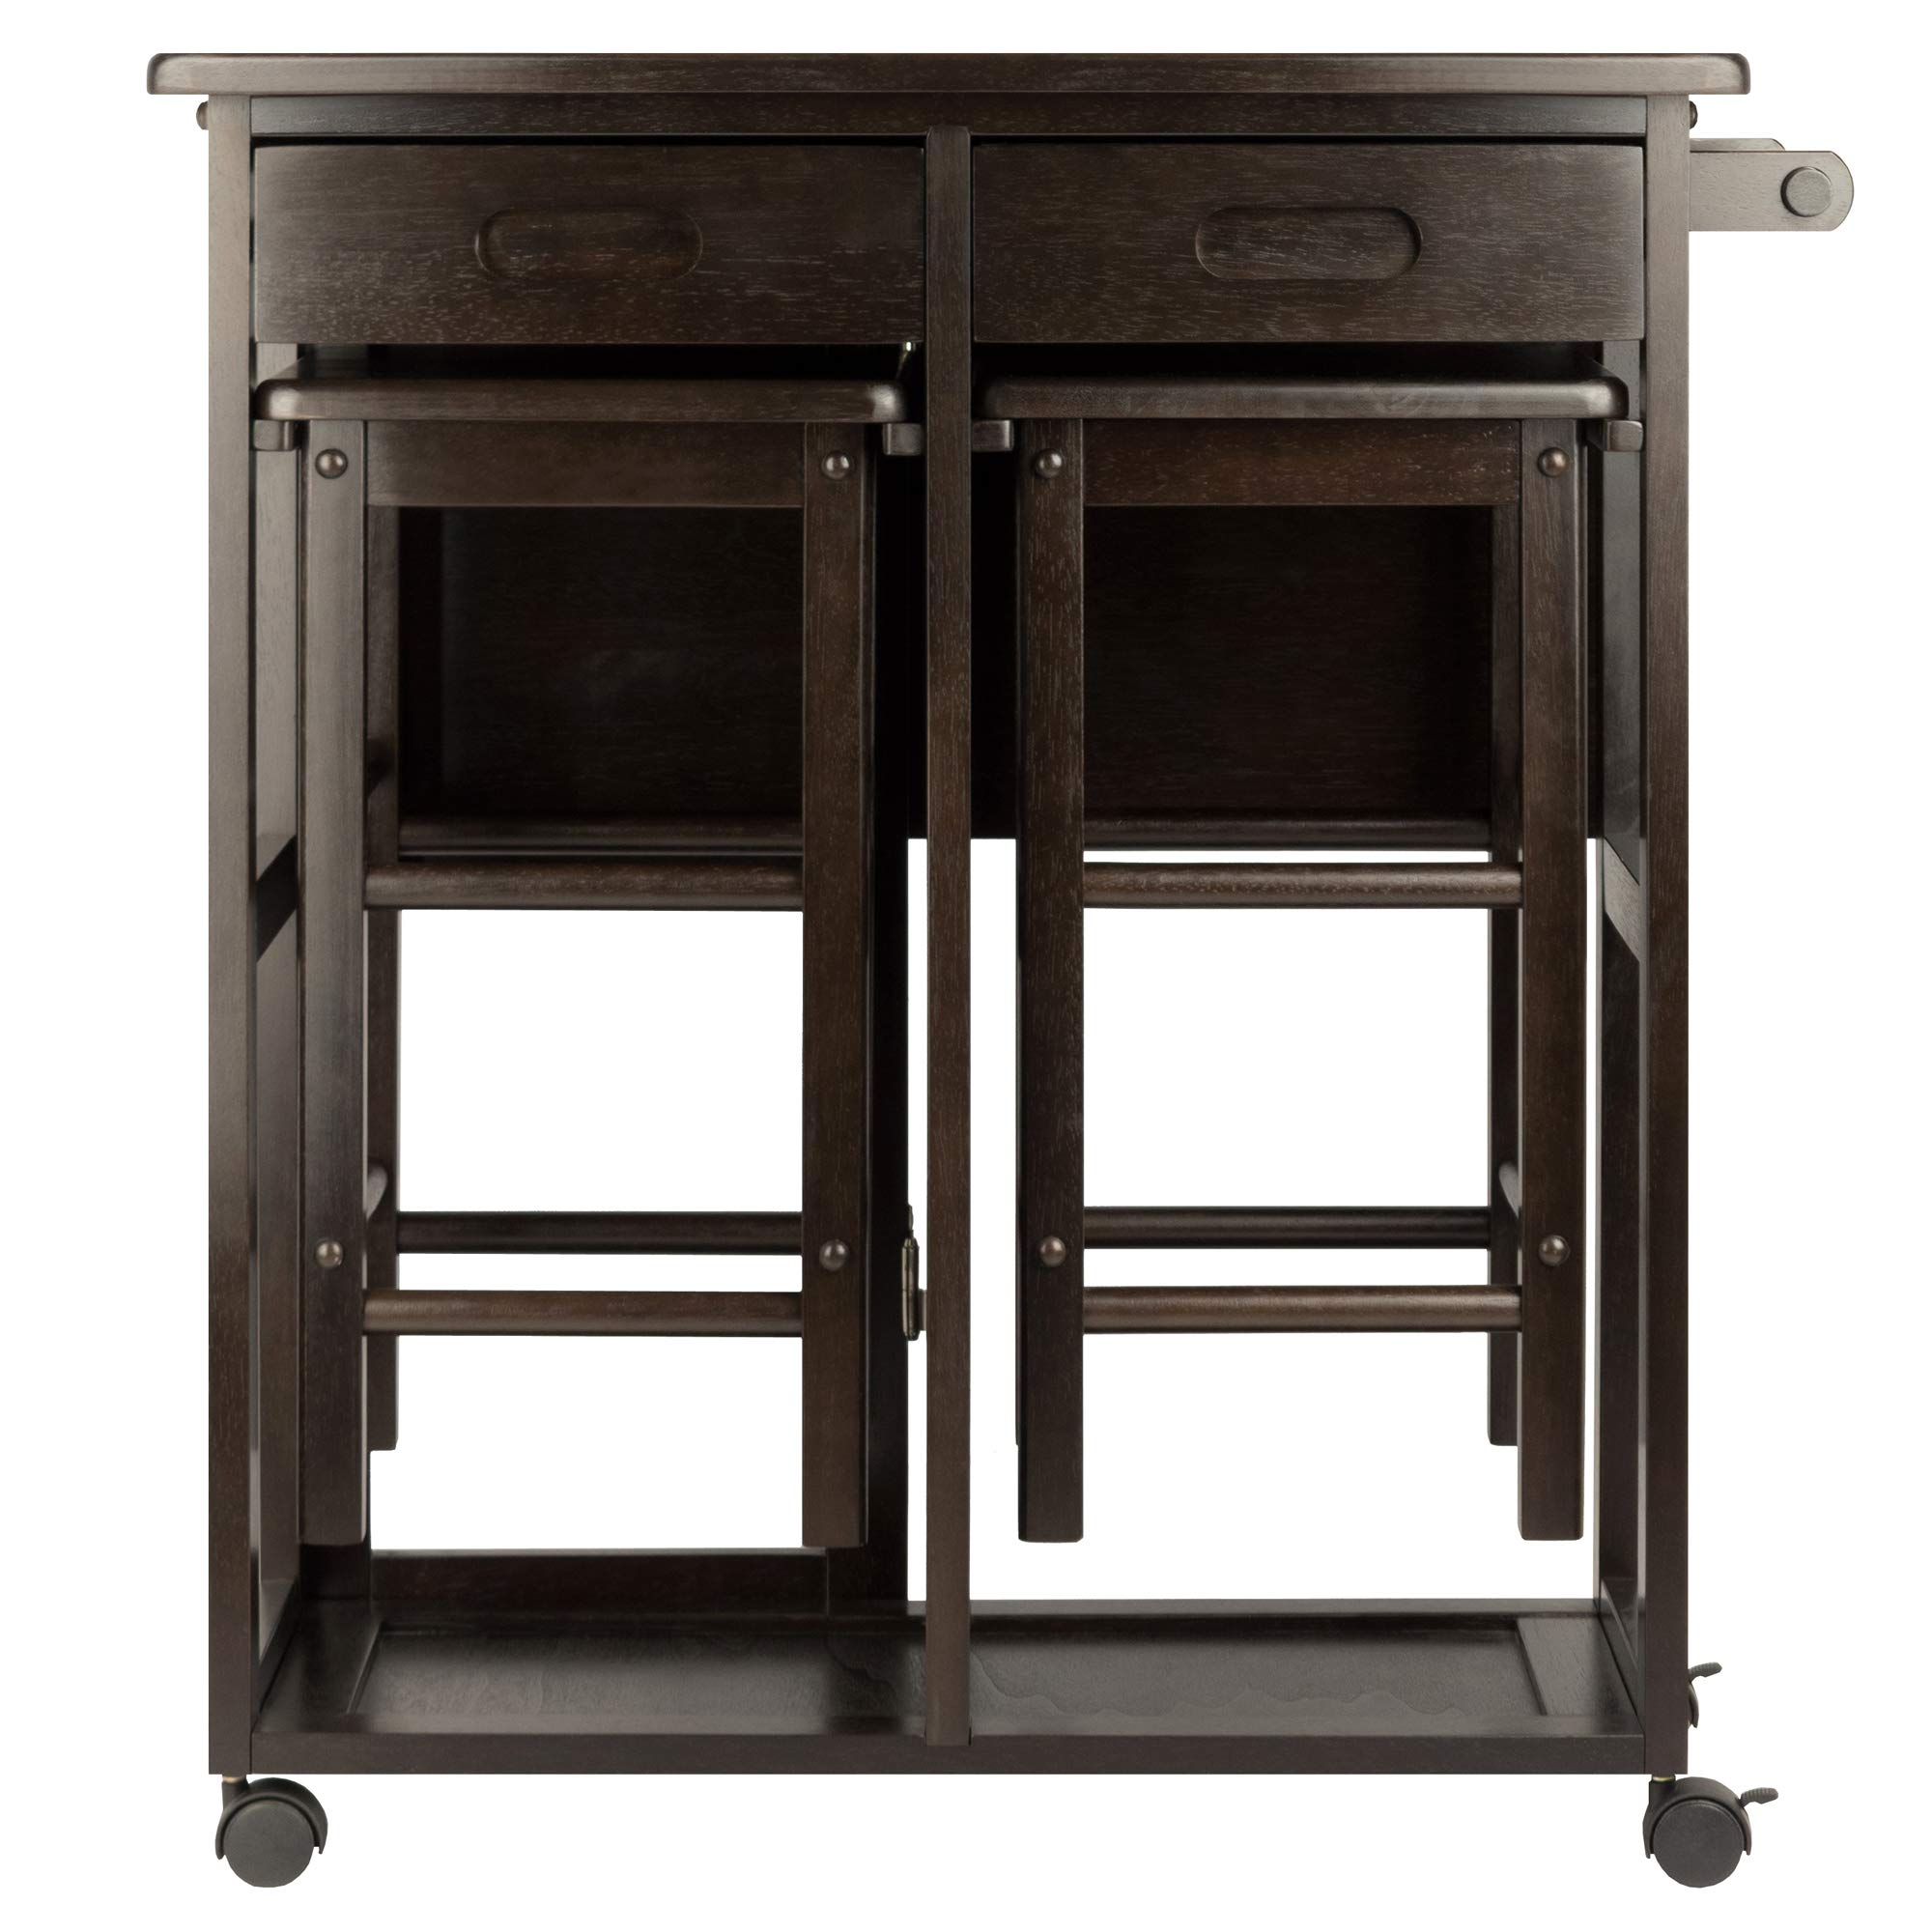 Winsome Wood 23330 Suzanne 3-PC Set Space Saver Kitchen, Smoke by Winsome Wood (Image #8)